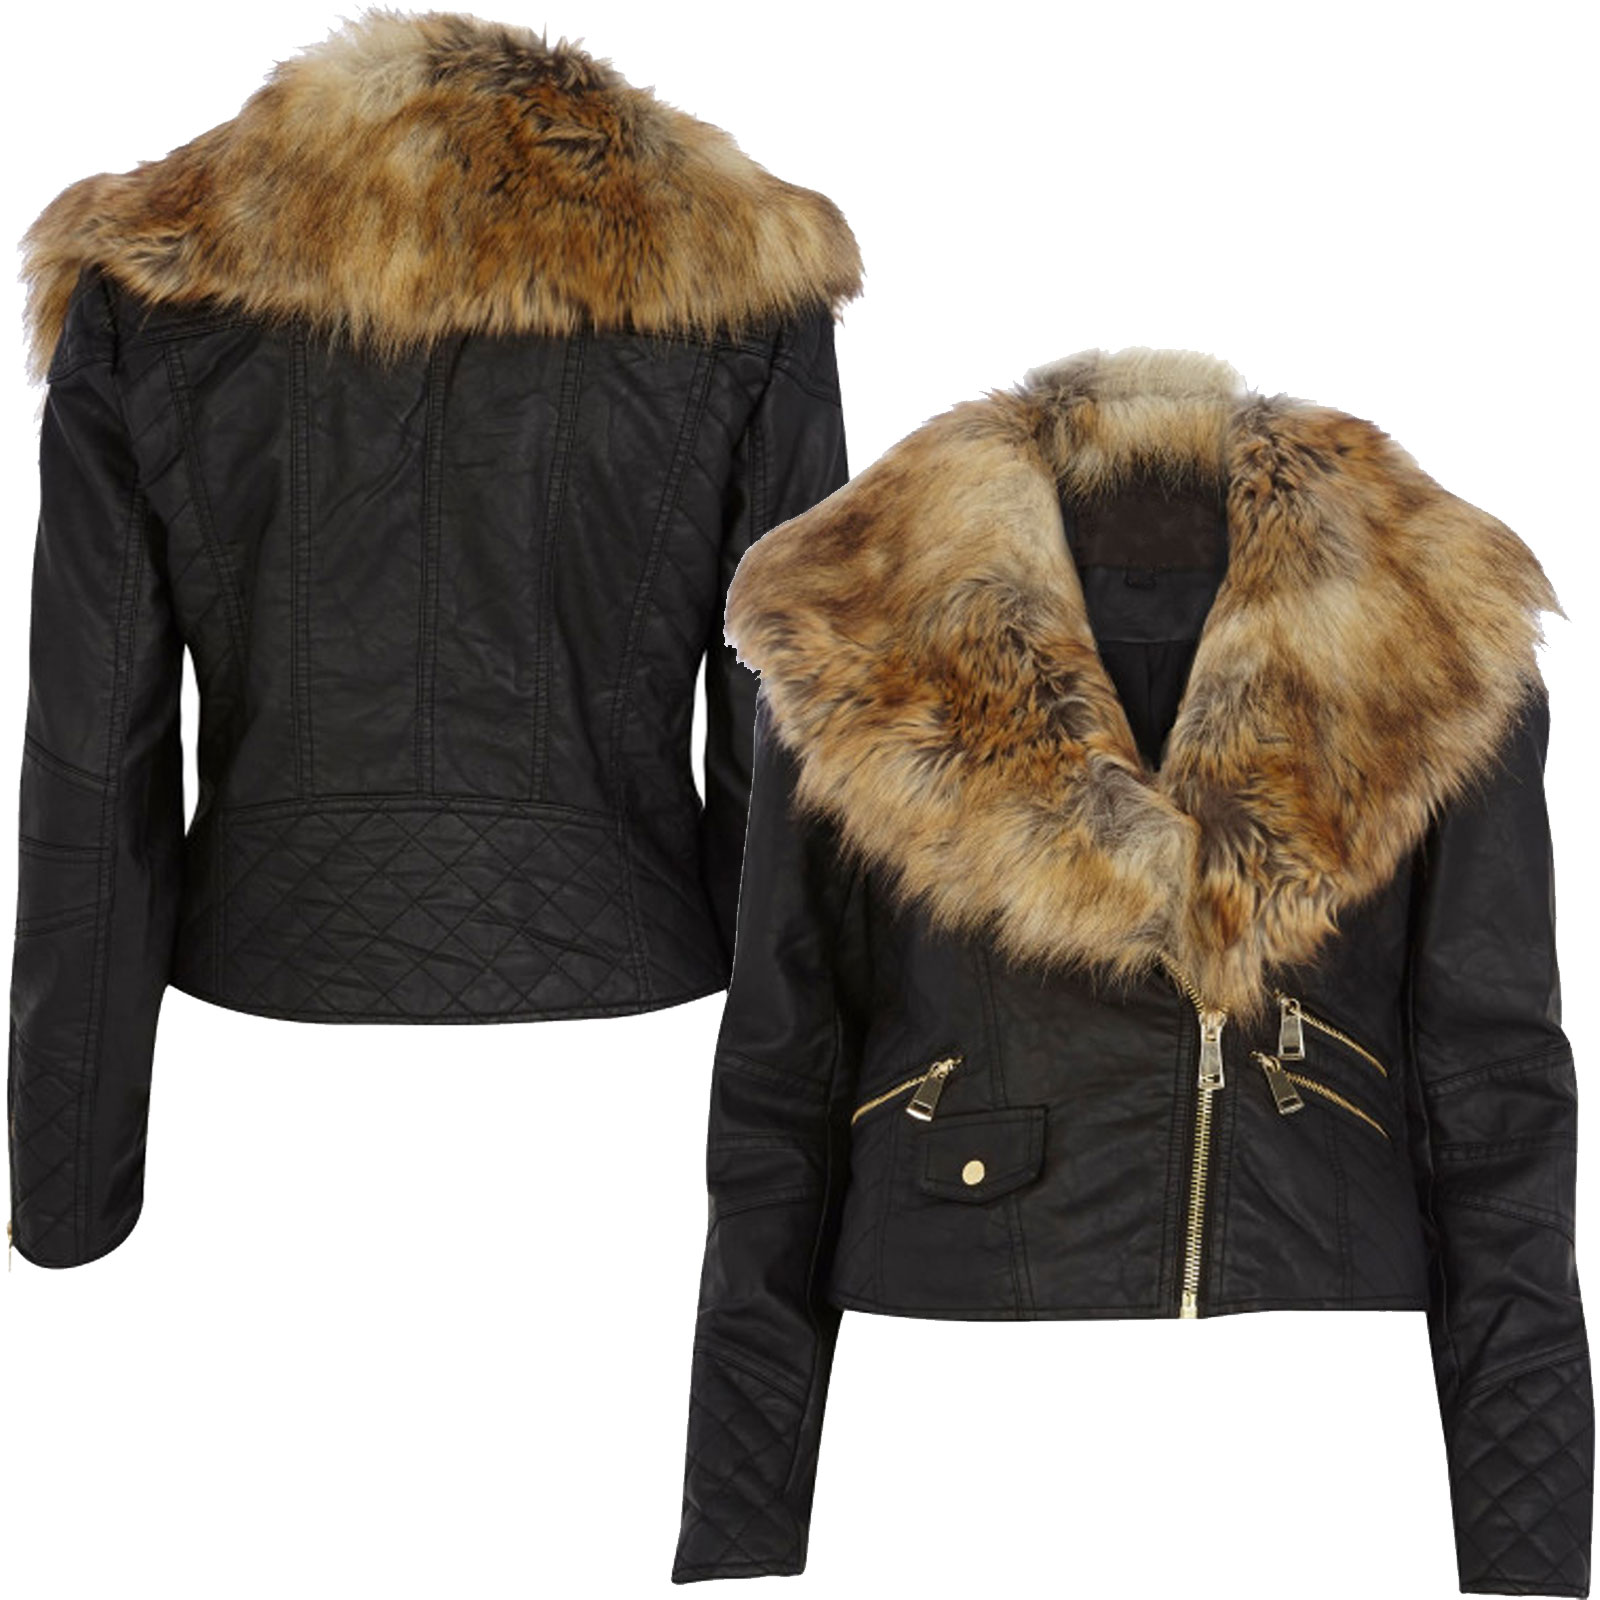 Womens Leather Jacket With Fur | Outdoor Jacket